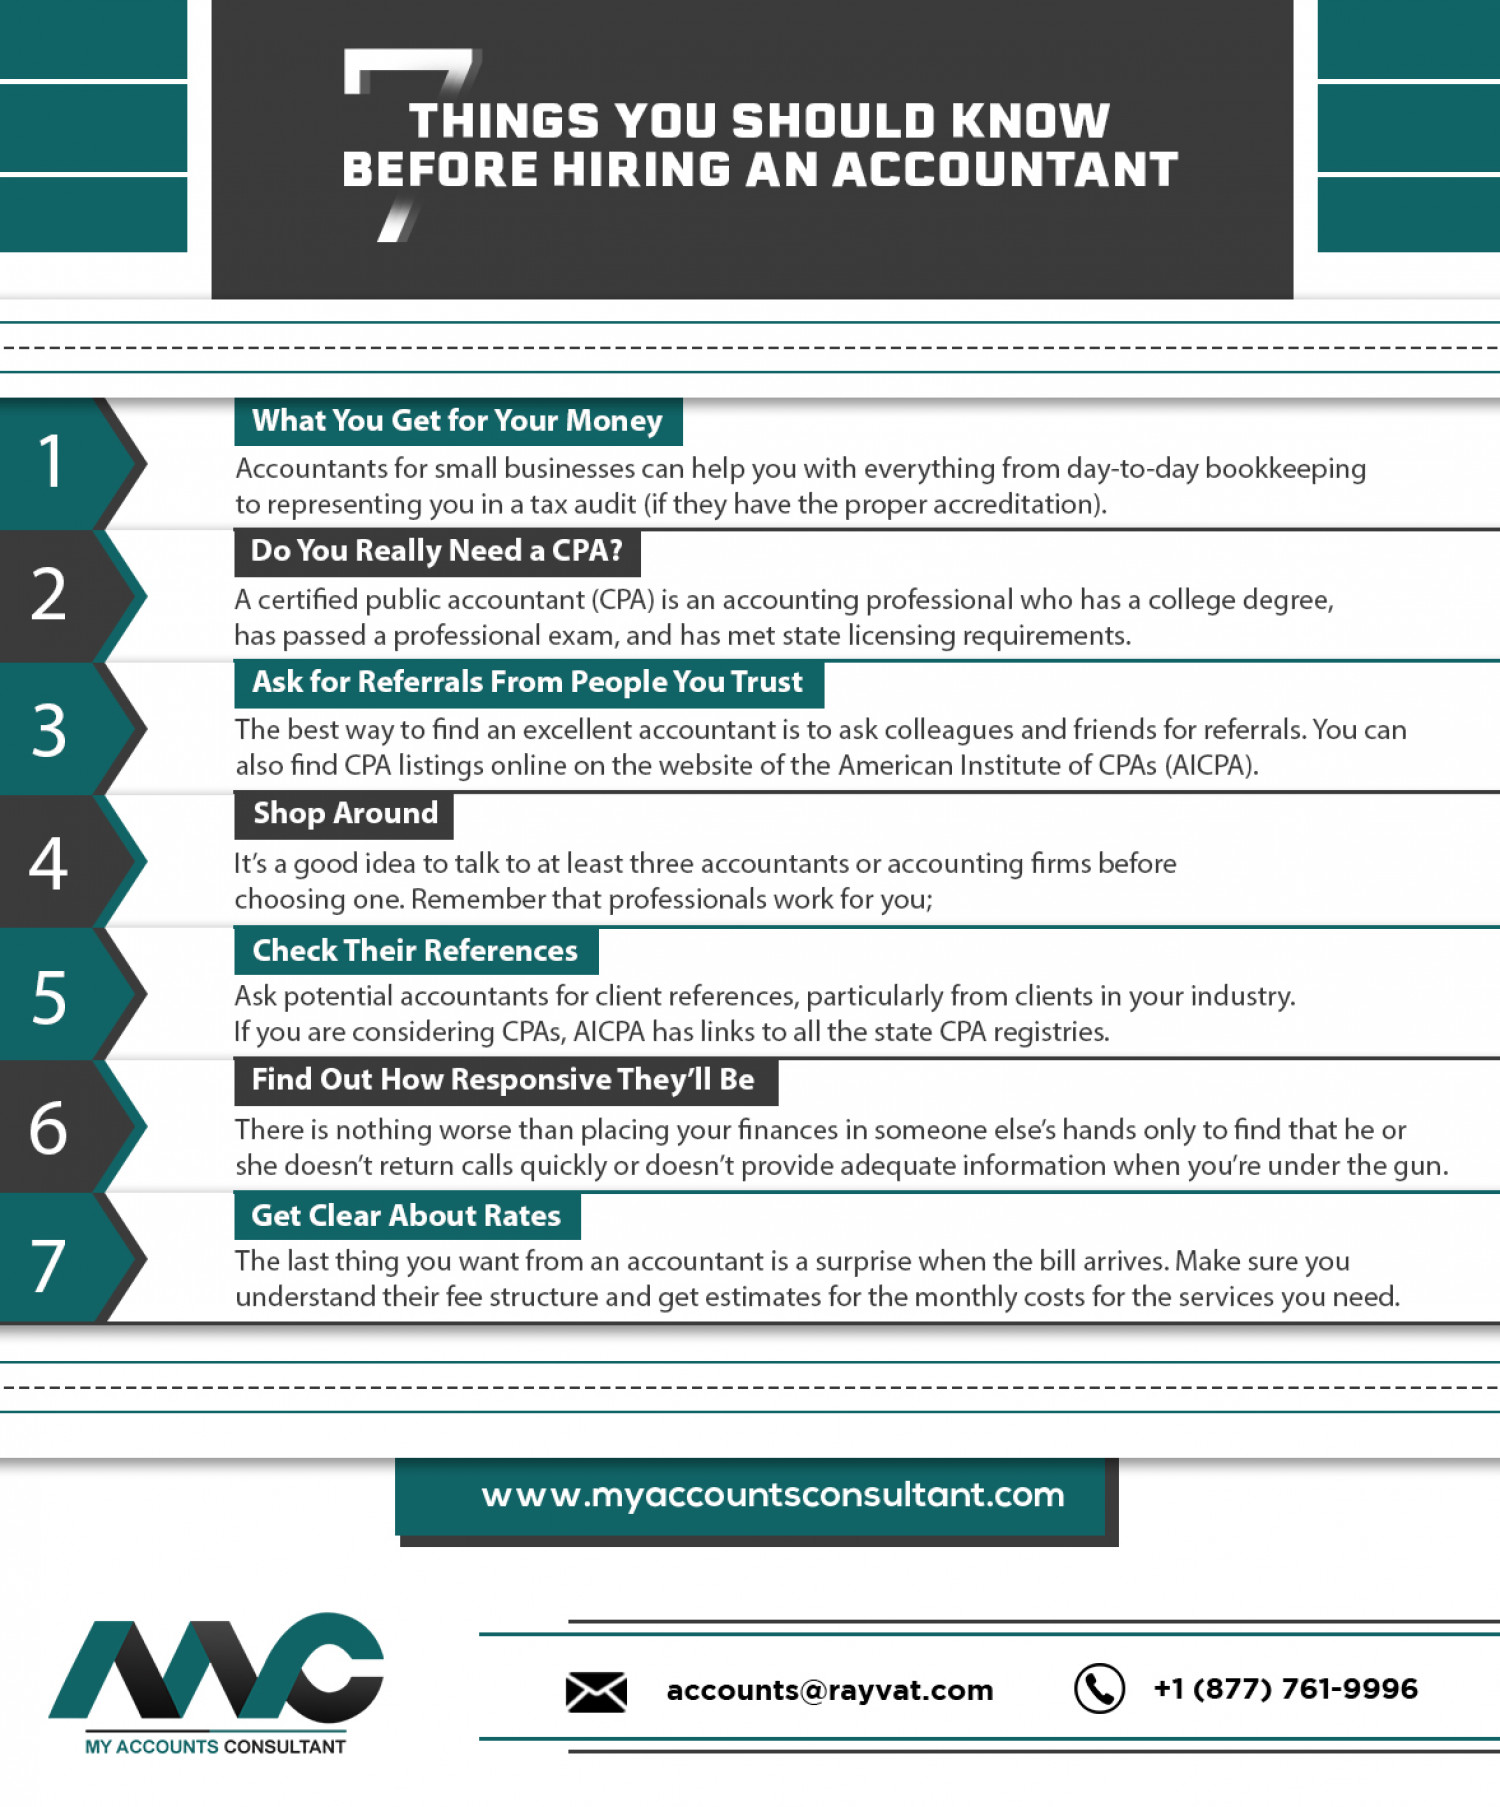 7 Things You Should Know Before Hiring An Accountant Infographic